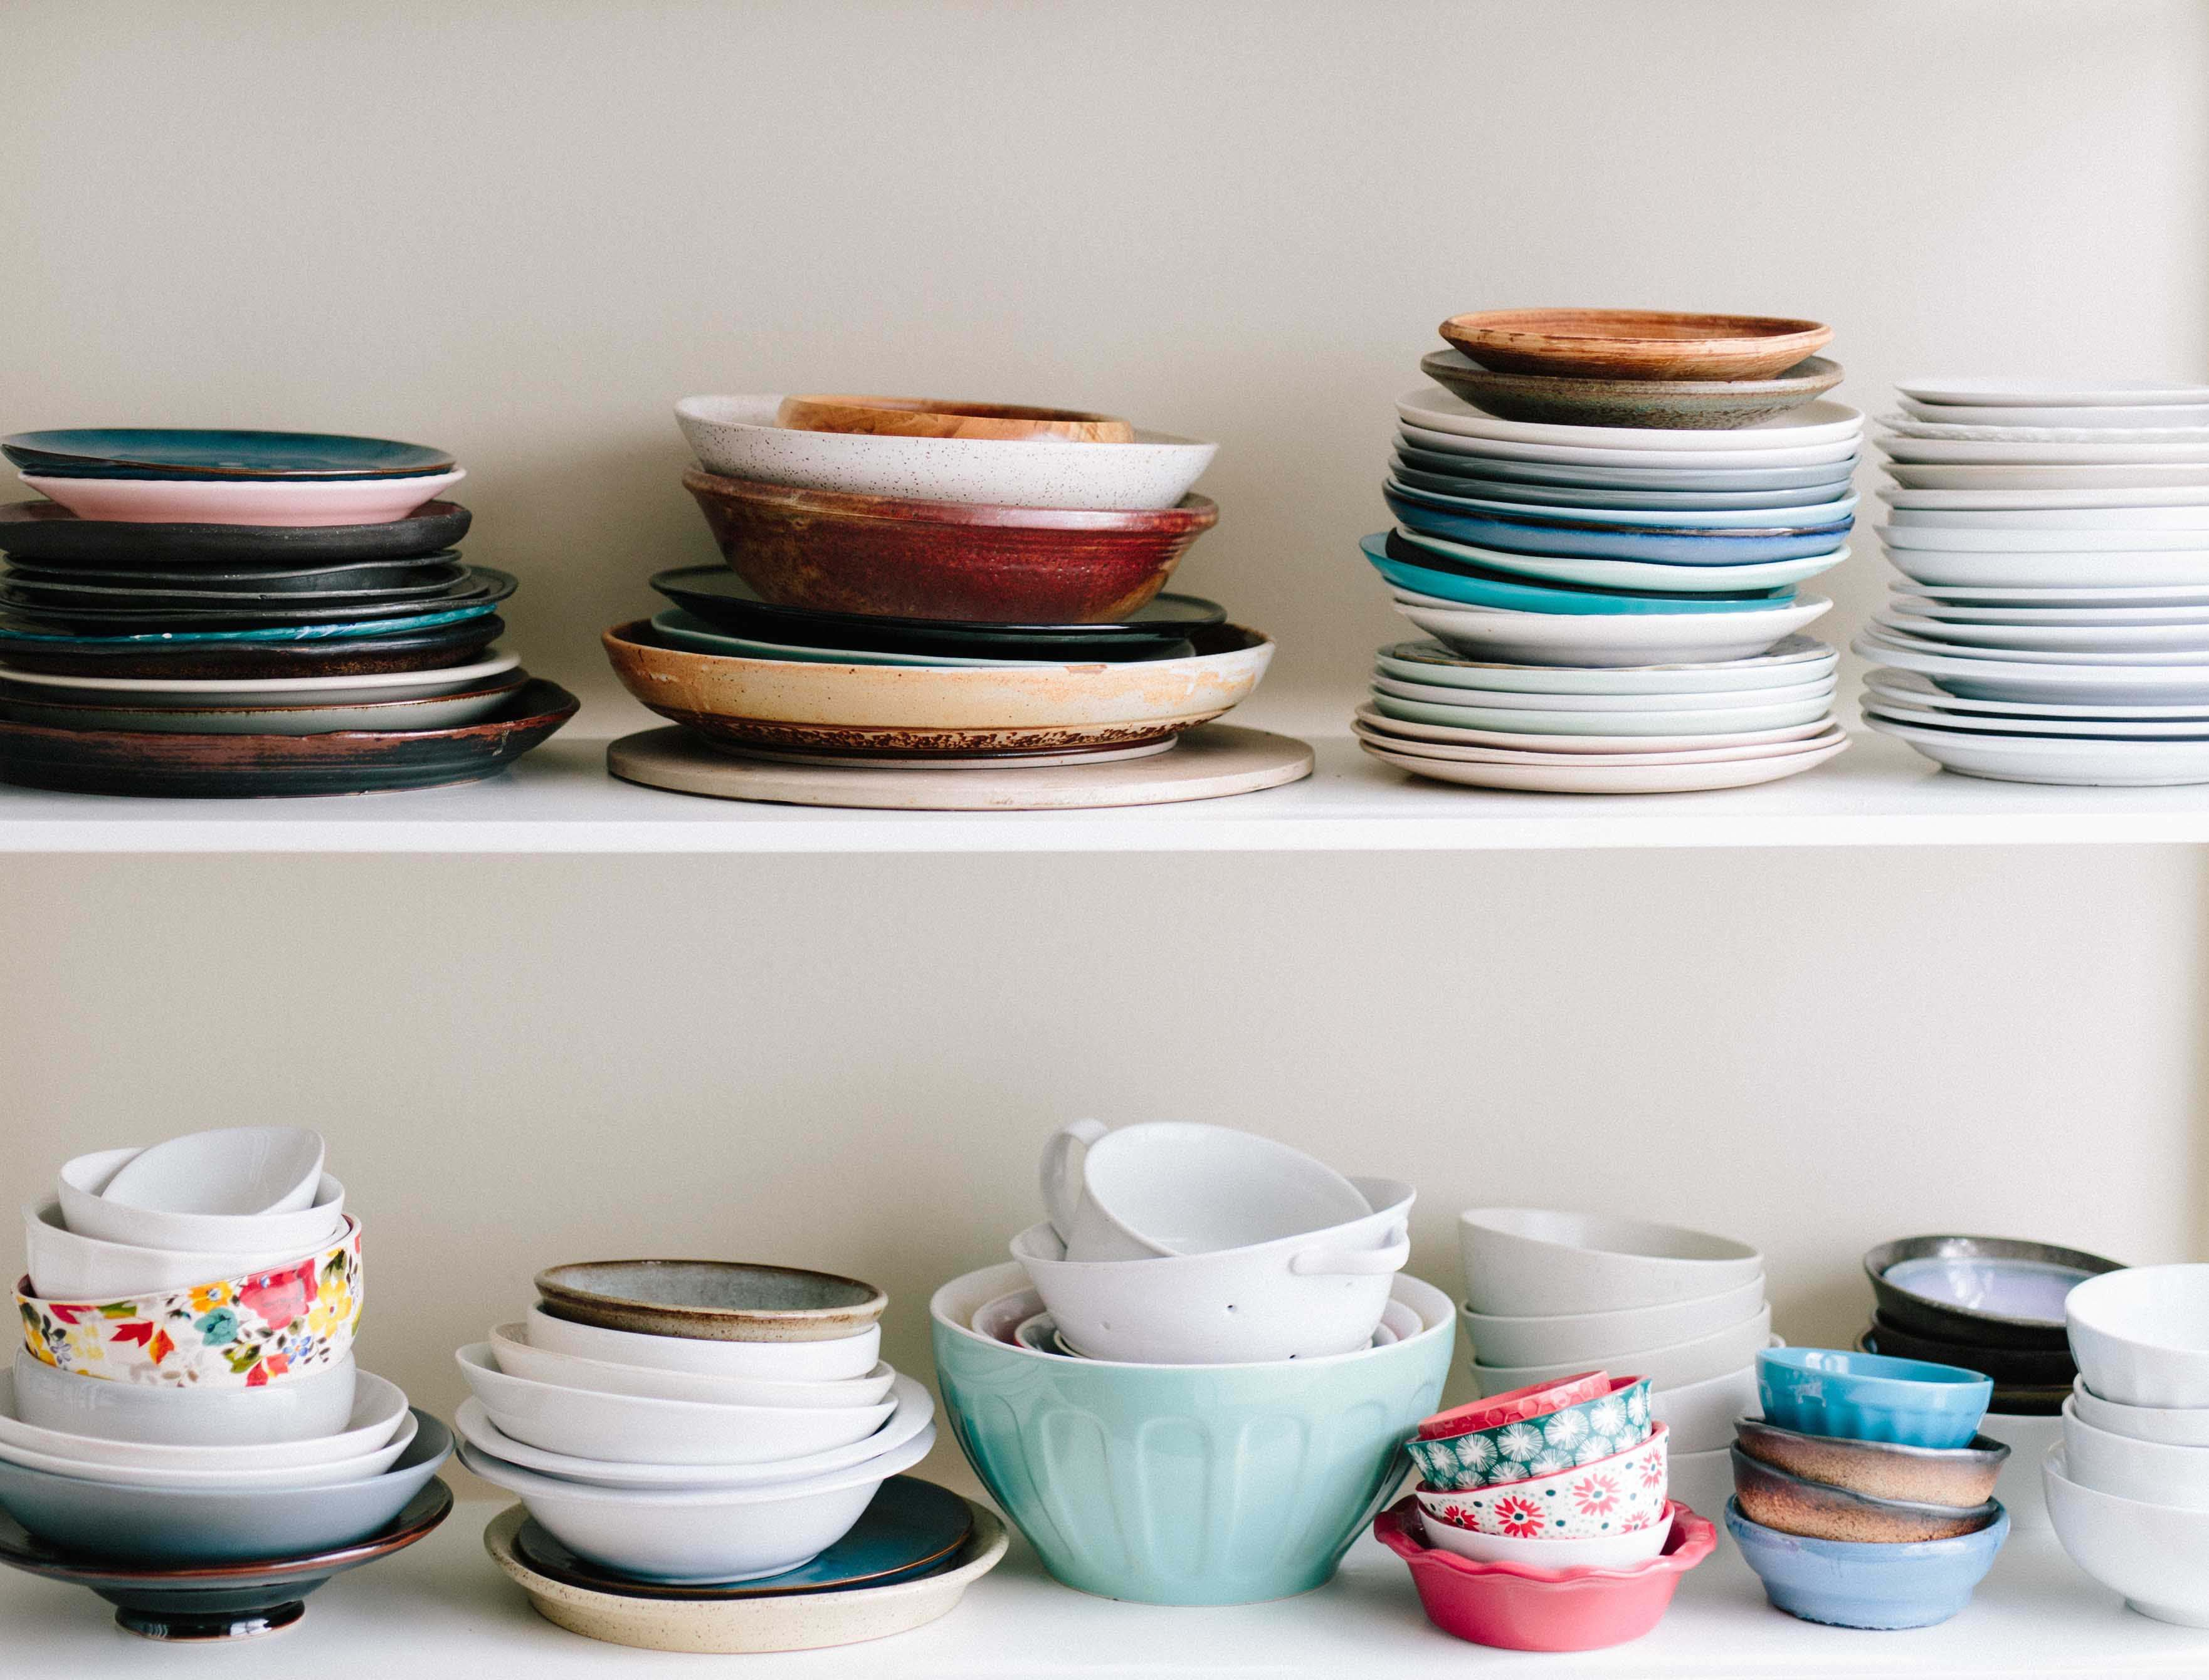 Stacks of dishes in a shared kitchen